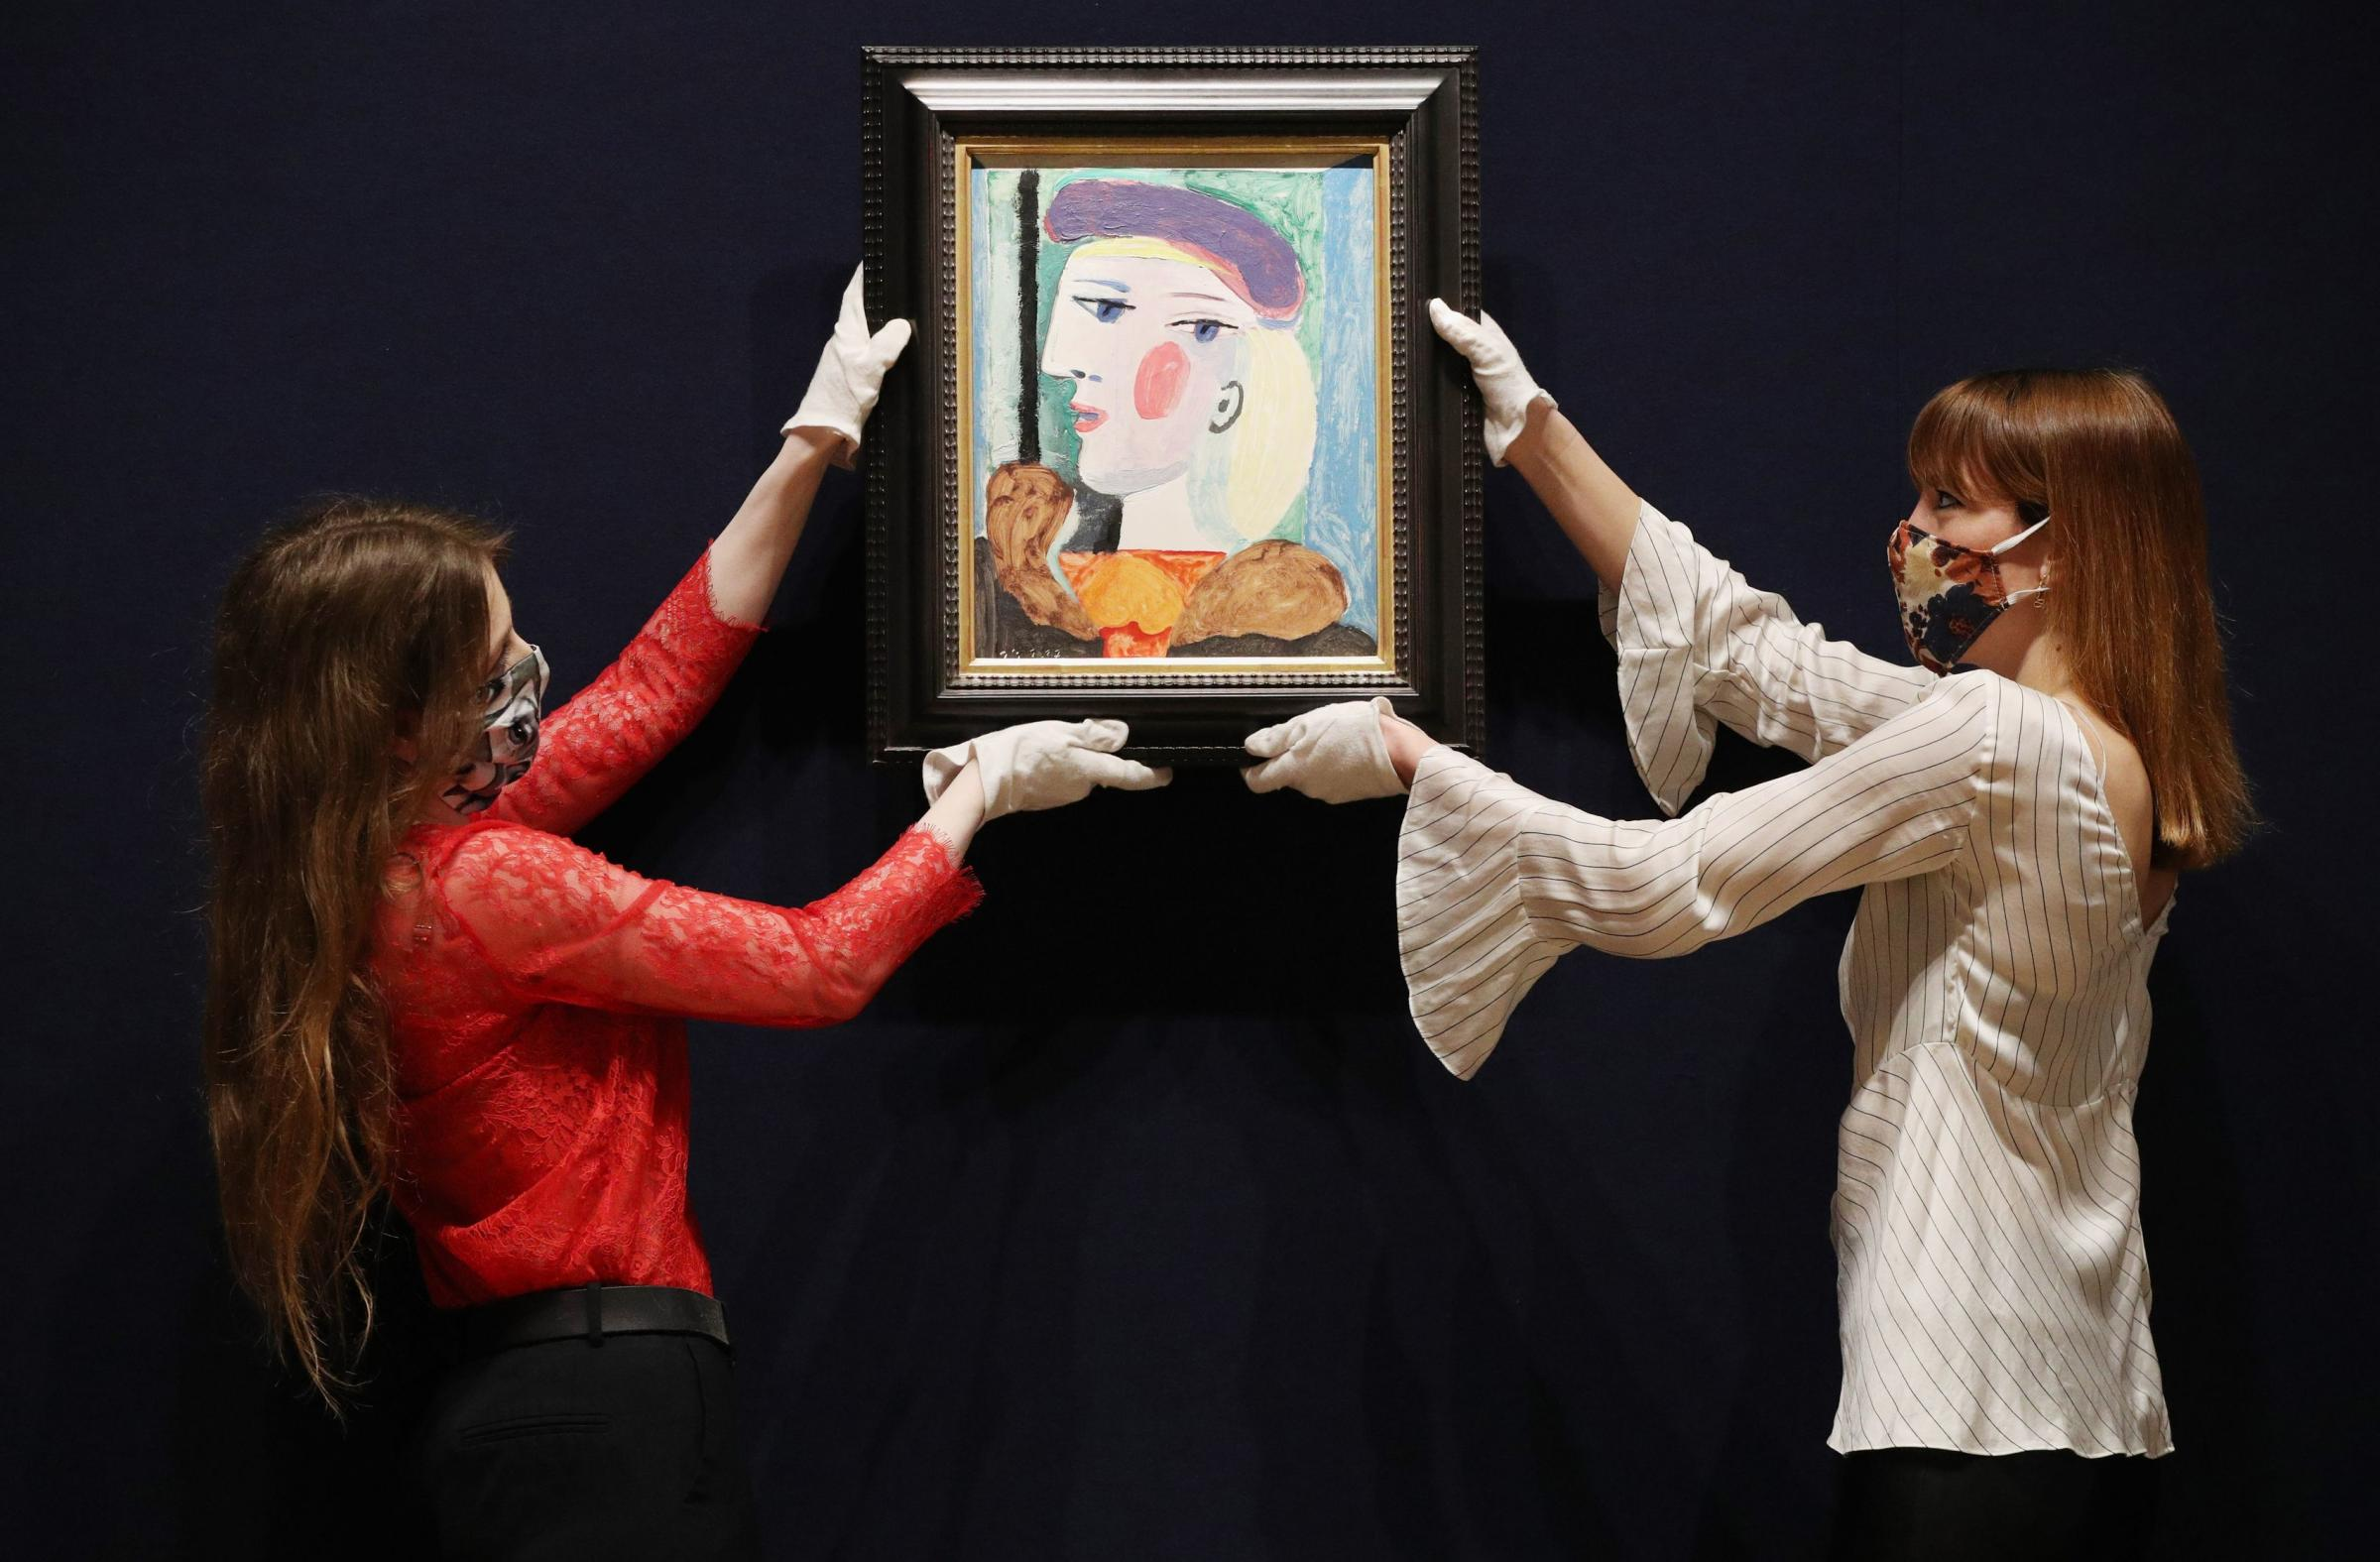 Picassos Femme au Beret Mauve is handled by employees at Bonhams in London before it is offered for sale and is estimated to fetch $10 million to $15 million when it is auctioned at their Impressionist and Modern Art sale in New York on Thursday, May 1